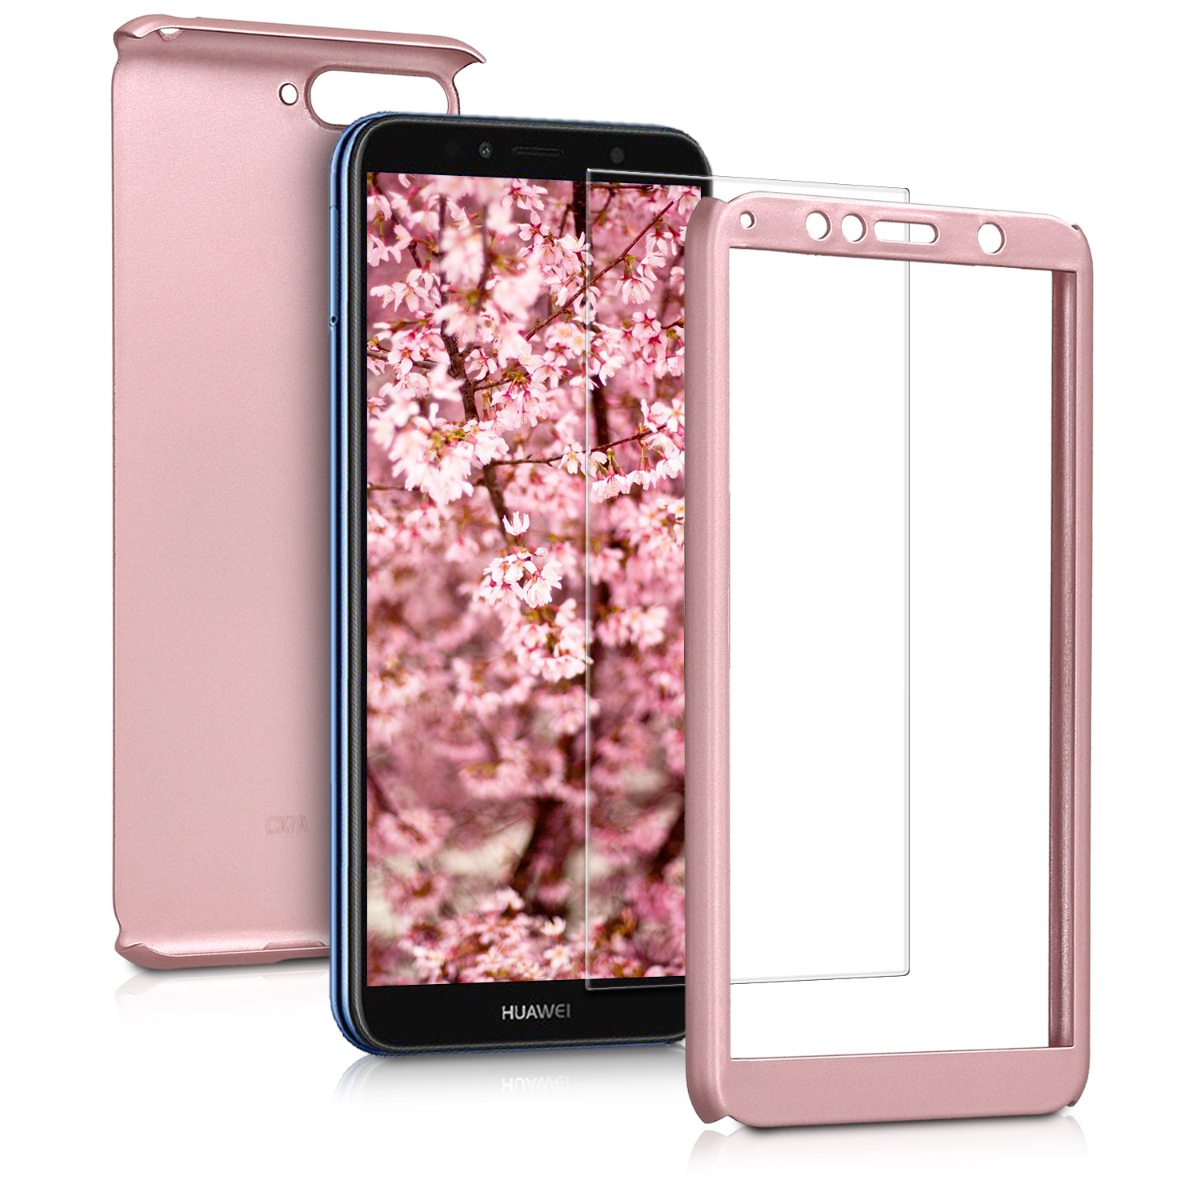 KW Θήκη Full Body with Screen Protector -  Huawei Y6 (2018) - Metallic Rose Gold (45639.31)